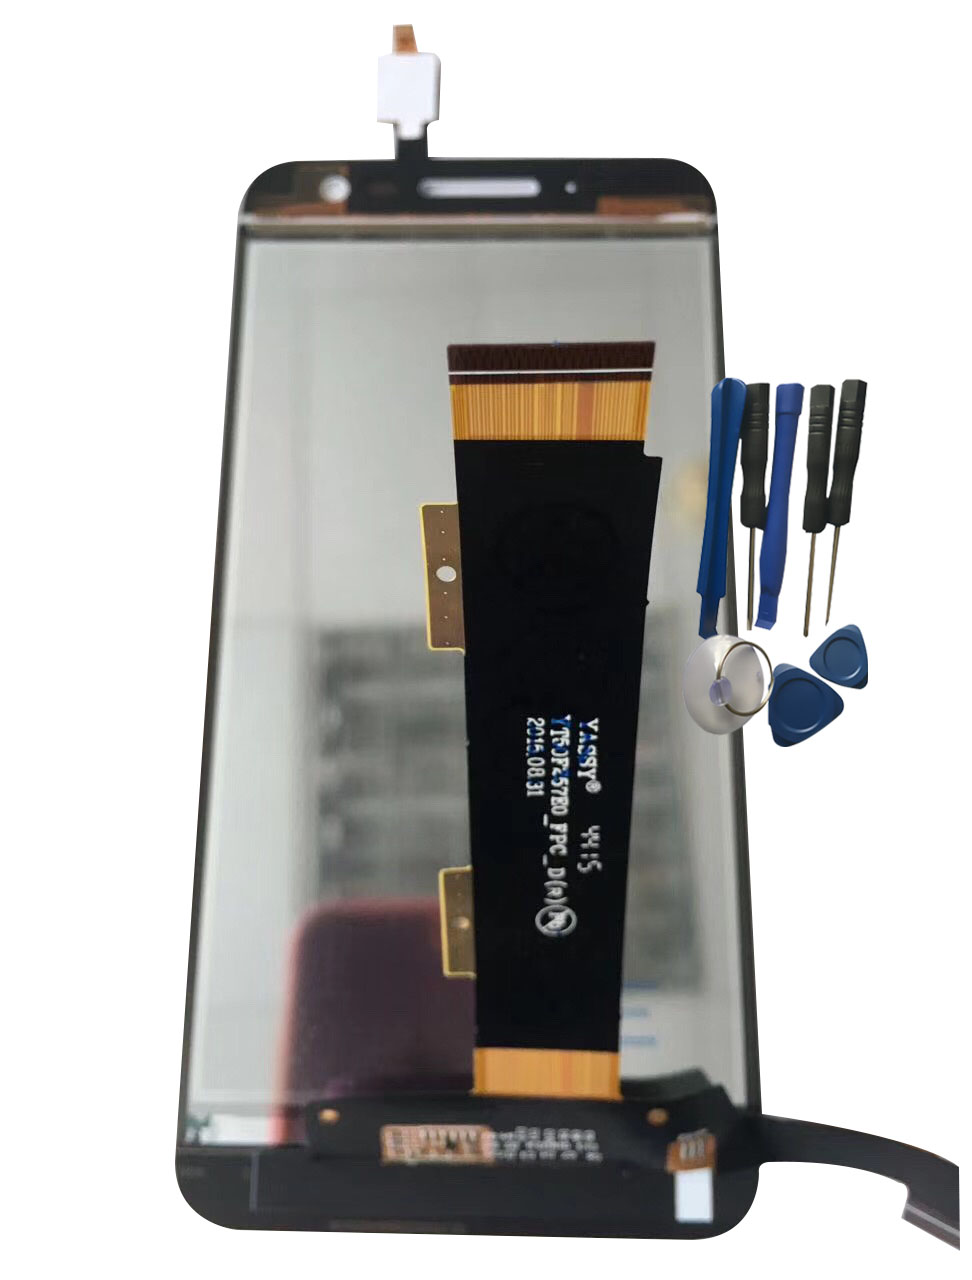 BINYEAE For YT50F257E0_FPC_D(R) LCD Display With Touch Screen Digitizer Sensor Assembly Replacement BINYEAE For YT50F257E0_FPC_D(R) LCD Display With Touch Screen Digitizer Sensor Assembly Replacement